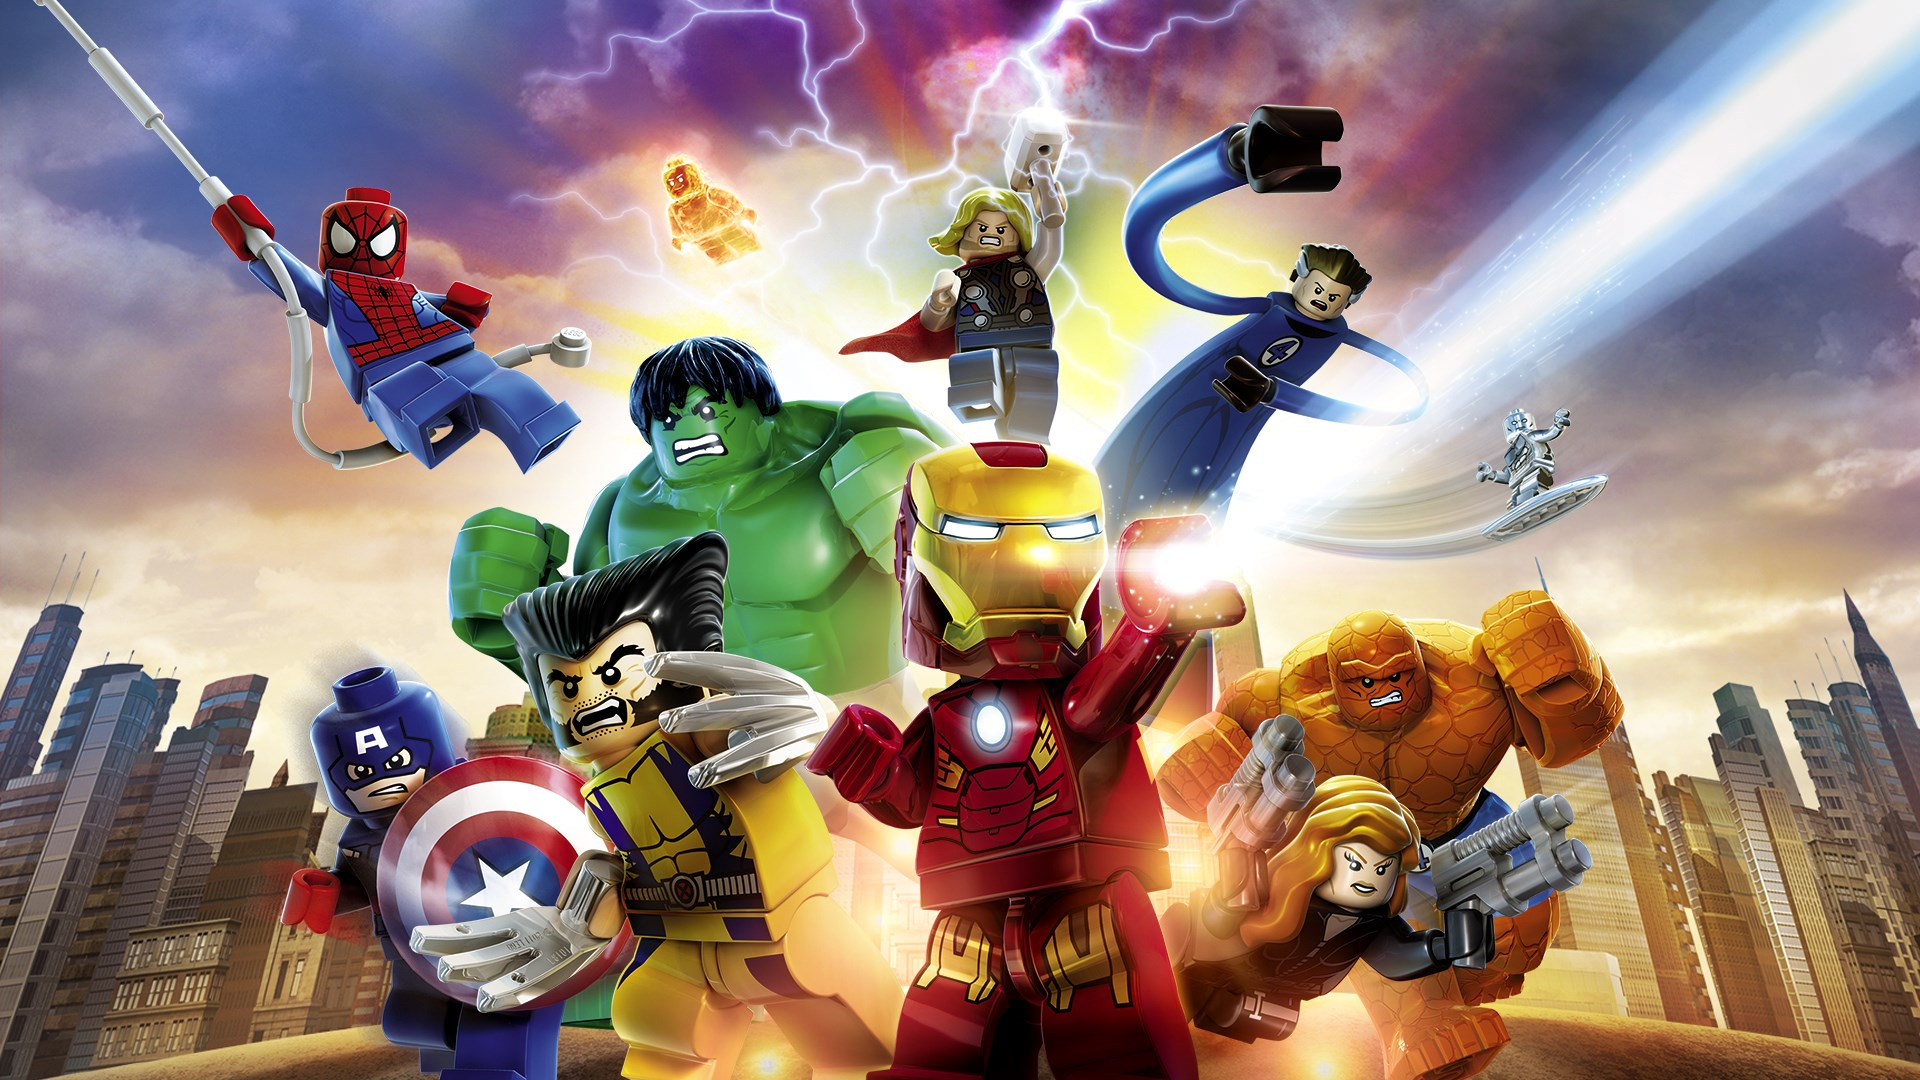 Notes On A Game: Lego Marvel Super Heroes